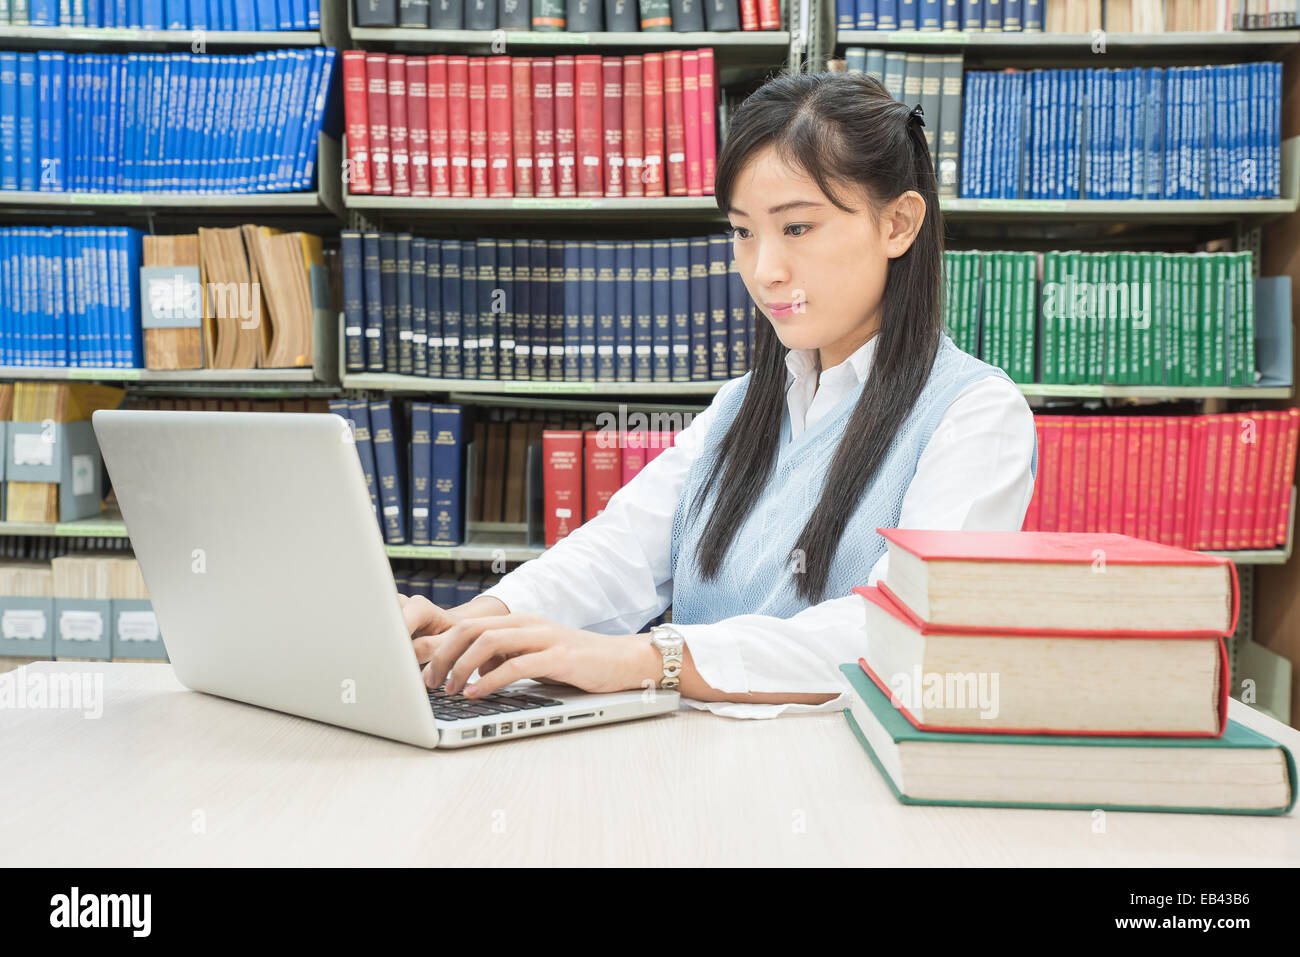 Asian female student typing on notebook in library - Stock Image